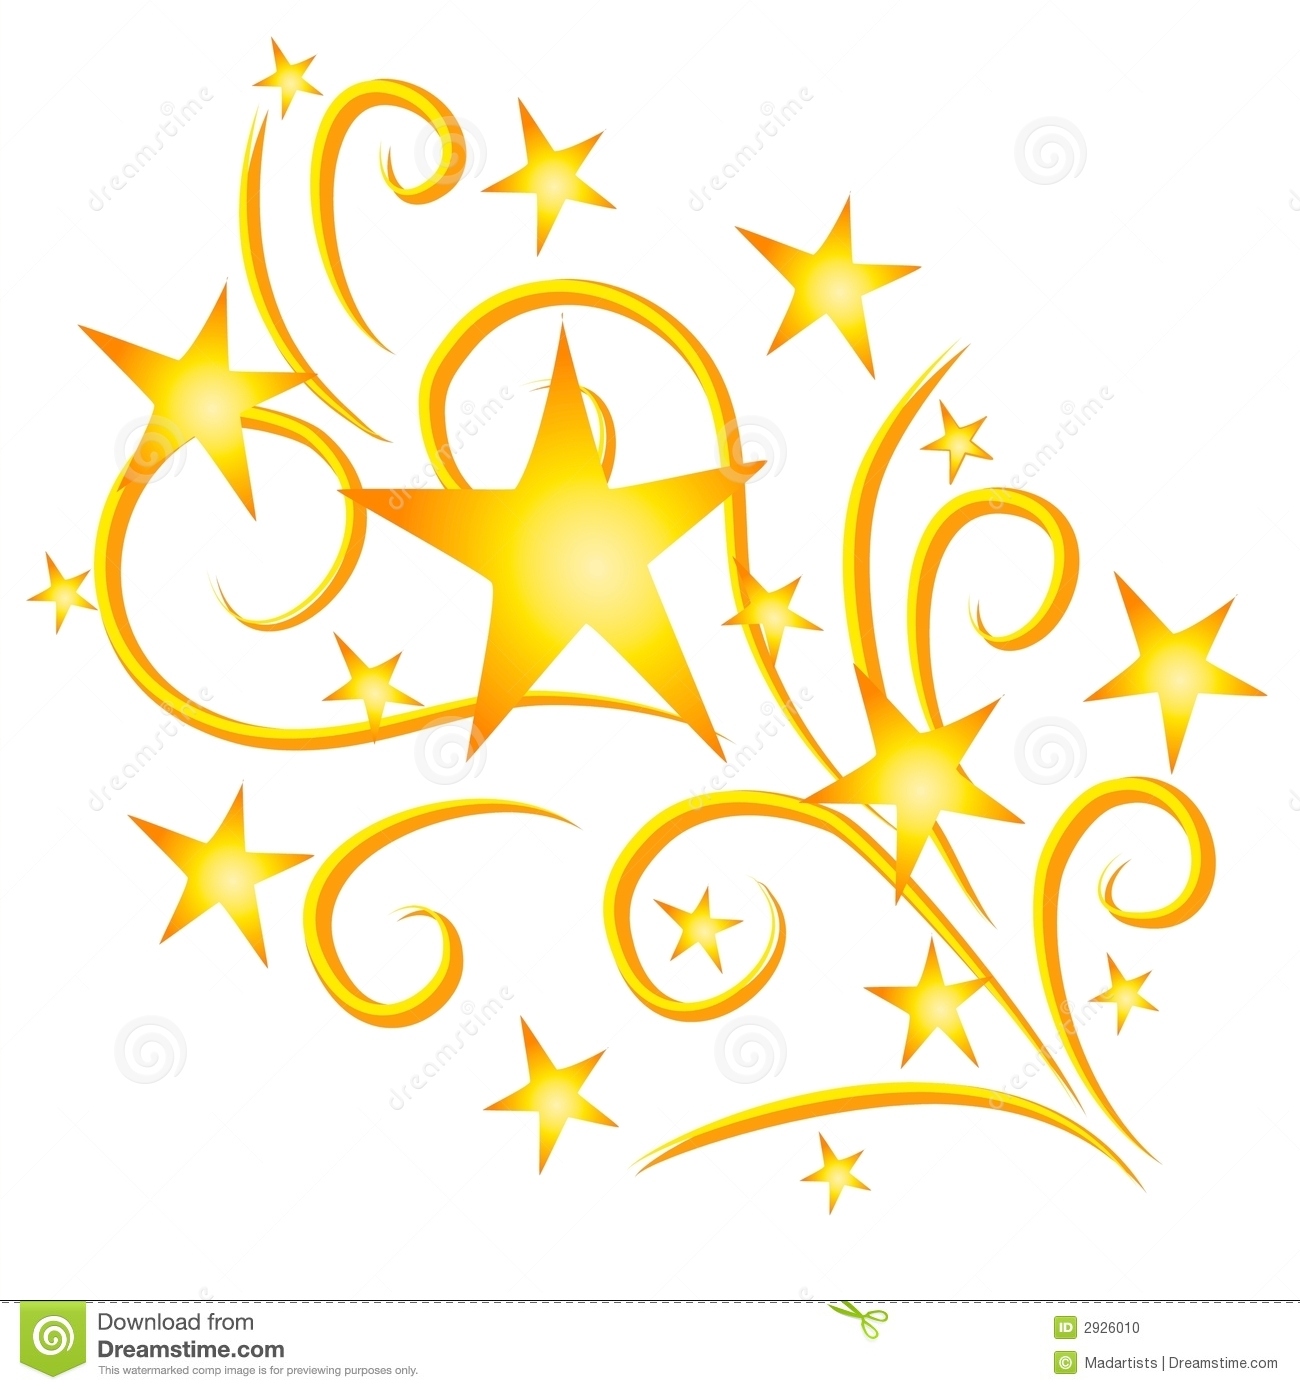 Shooting Star clipart star explosion  Gold Shooting 2926010 Image: